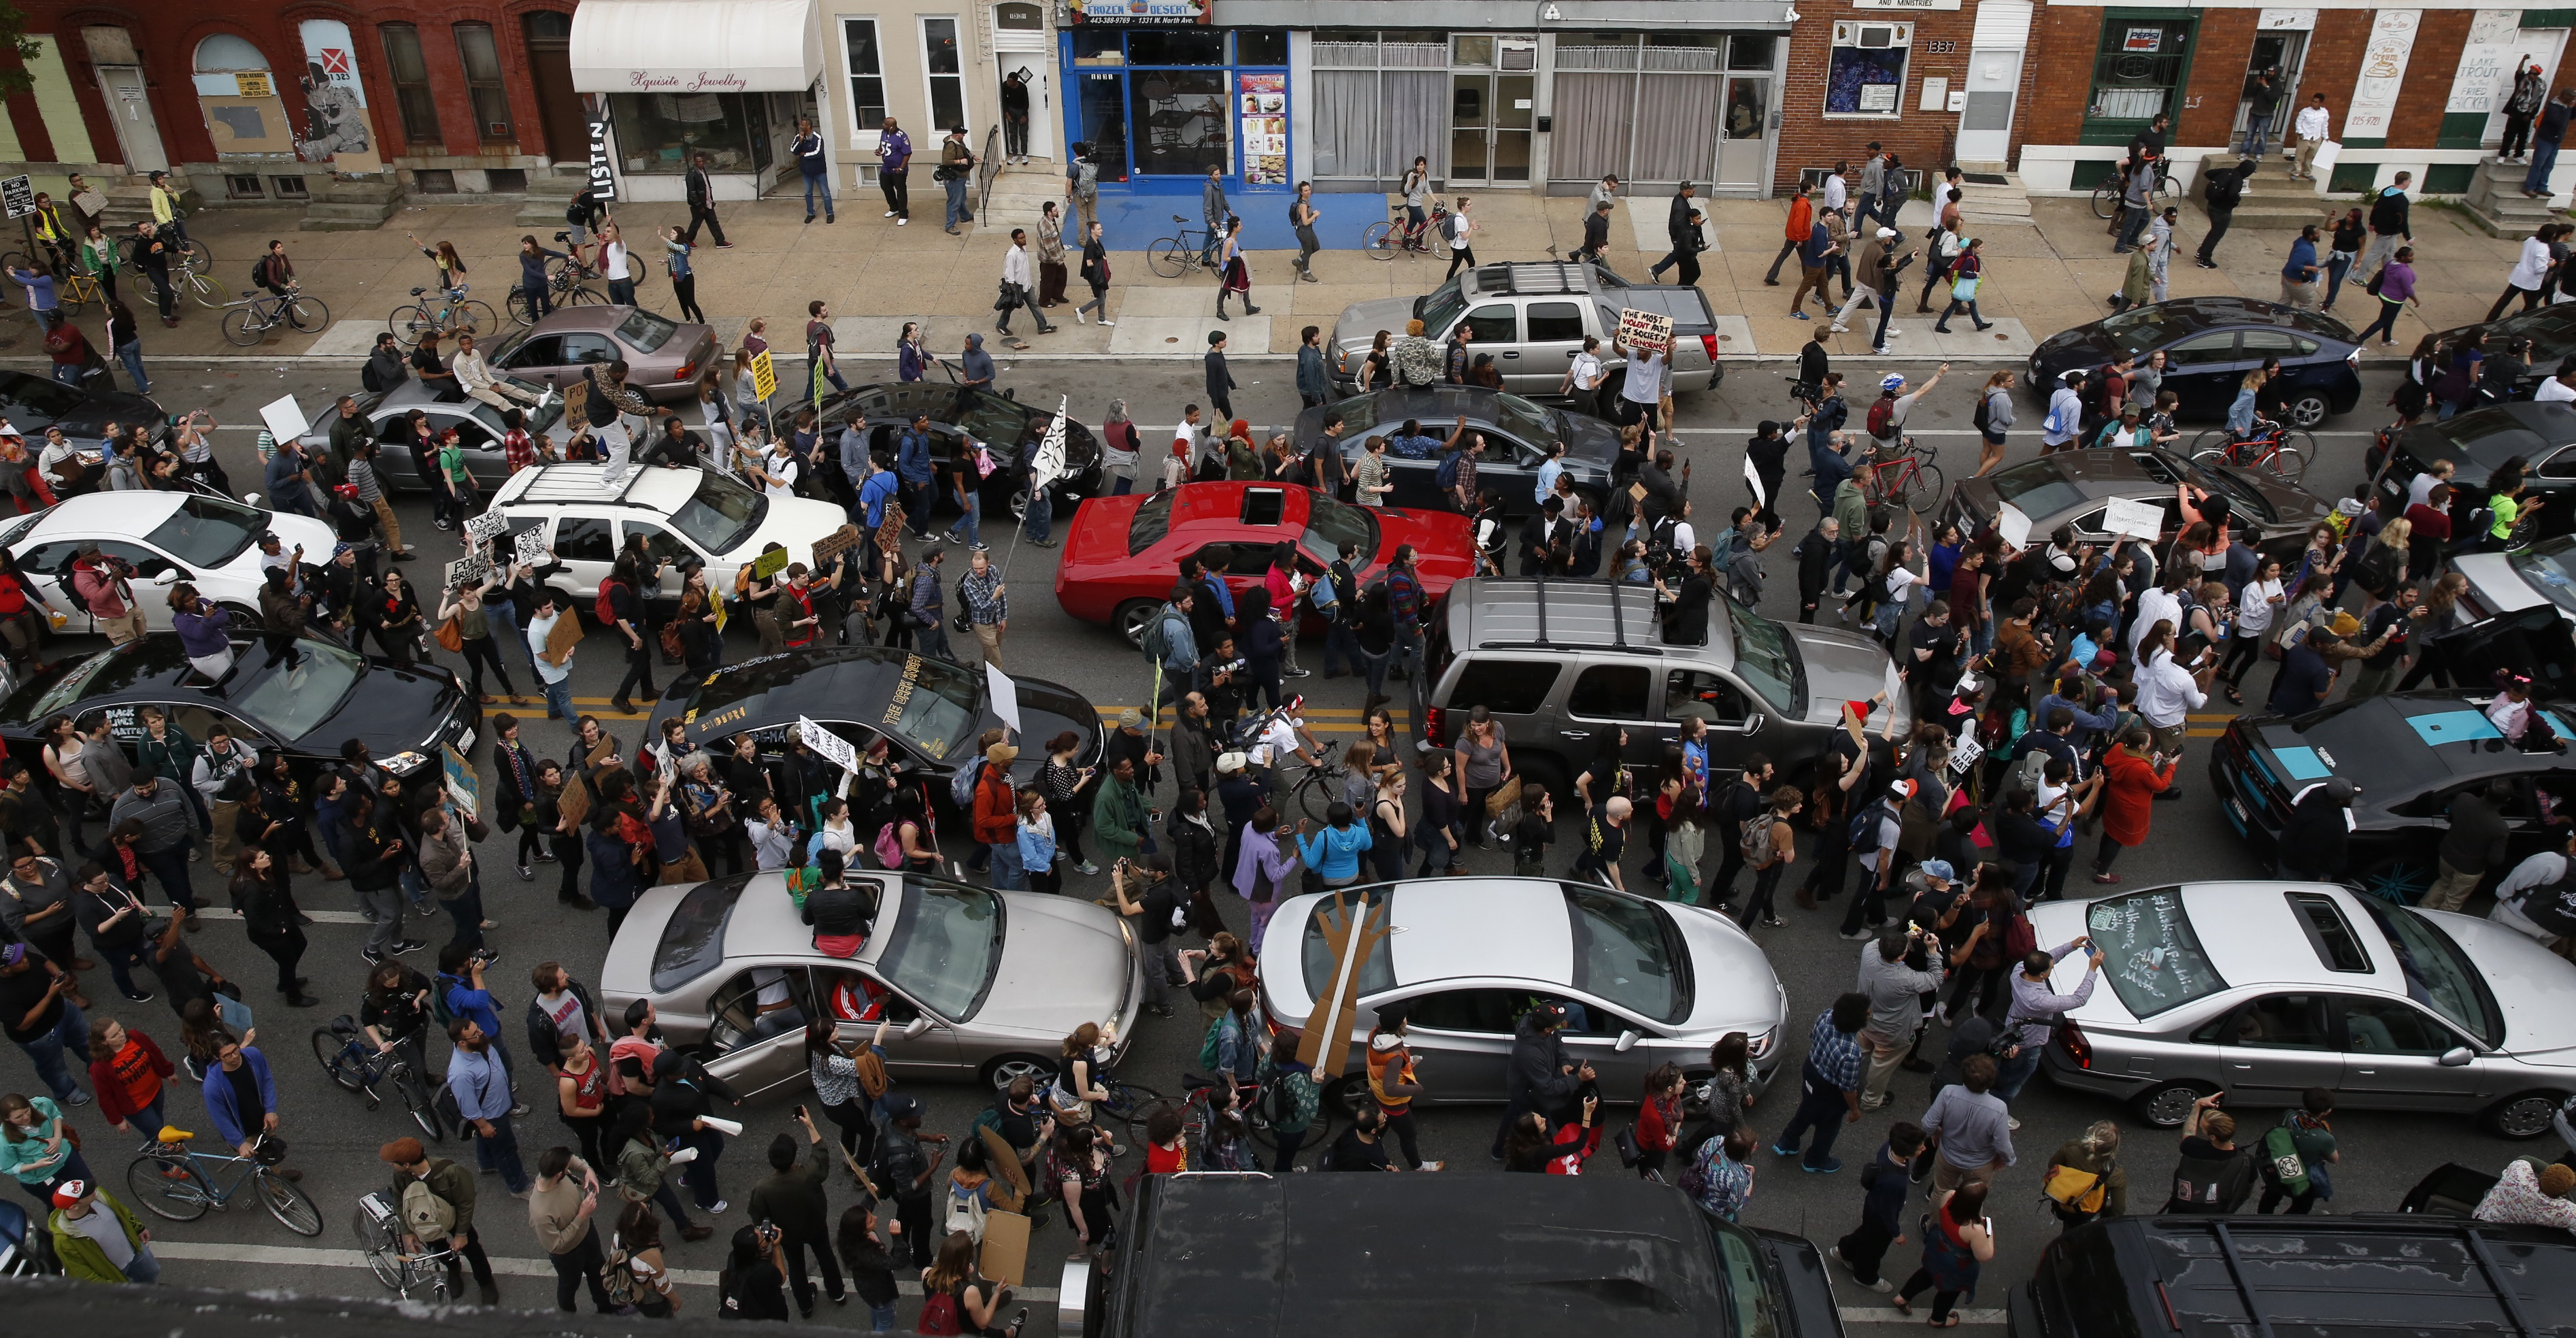 baltimore_protests002